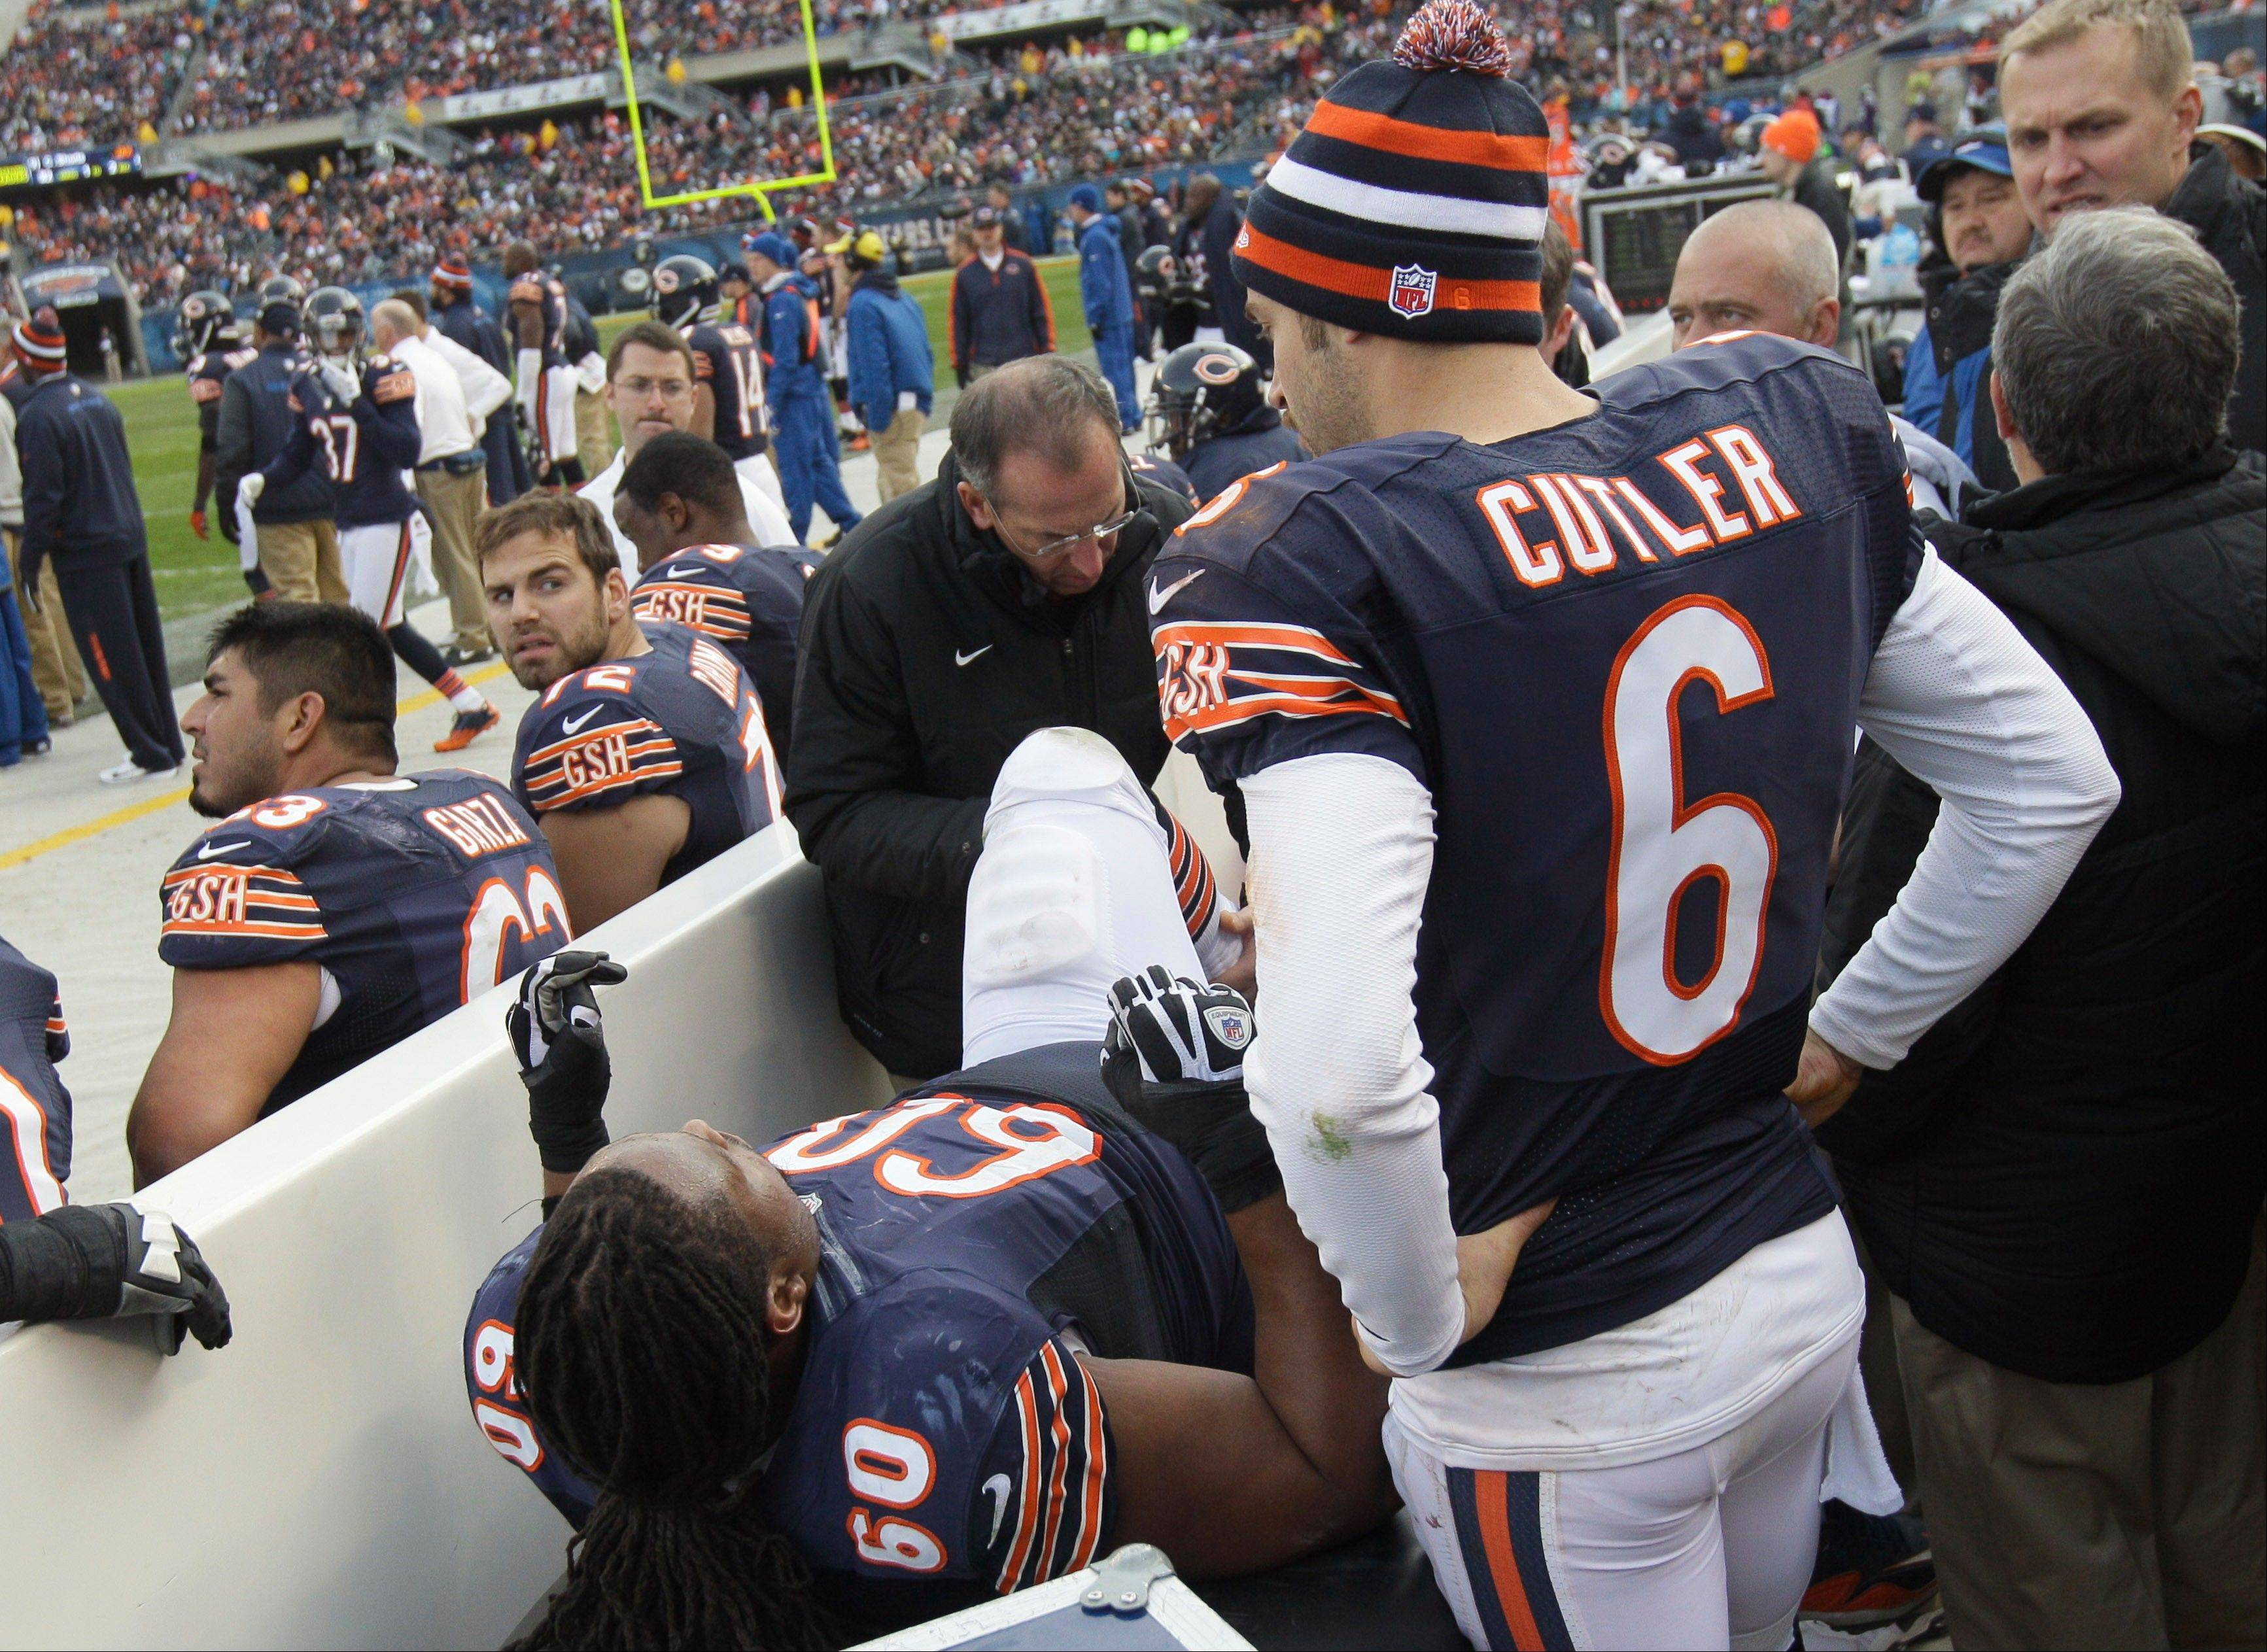 Bears quarterback Jay Cutler looks on as a trainer examines the left leg of injured guard Lance Louis in Sunday's game against the Minnesota Vikings at Soldier Field. Louis is out for the season with a knee injury.